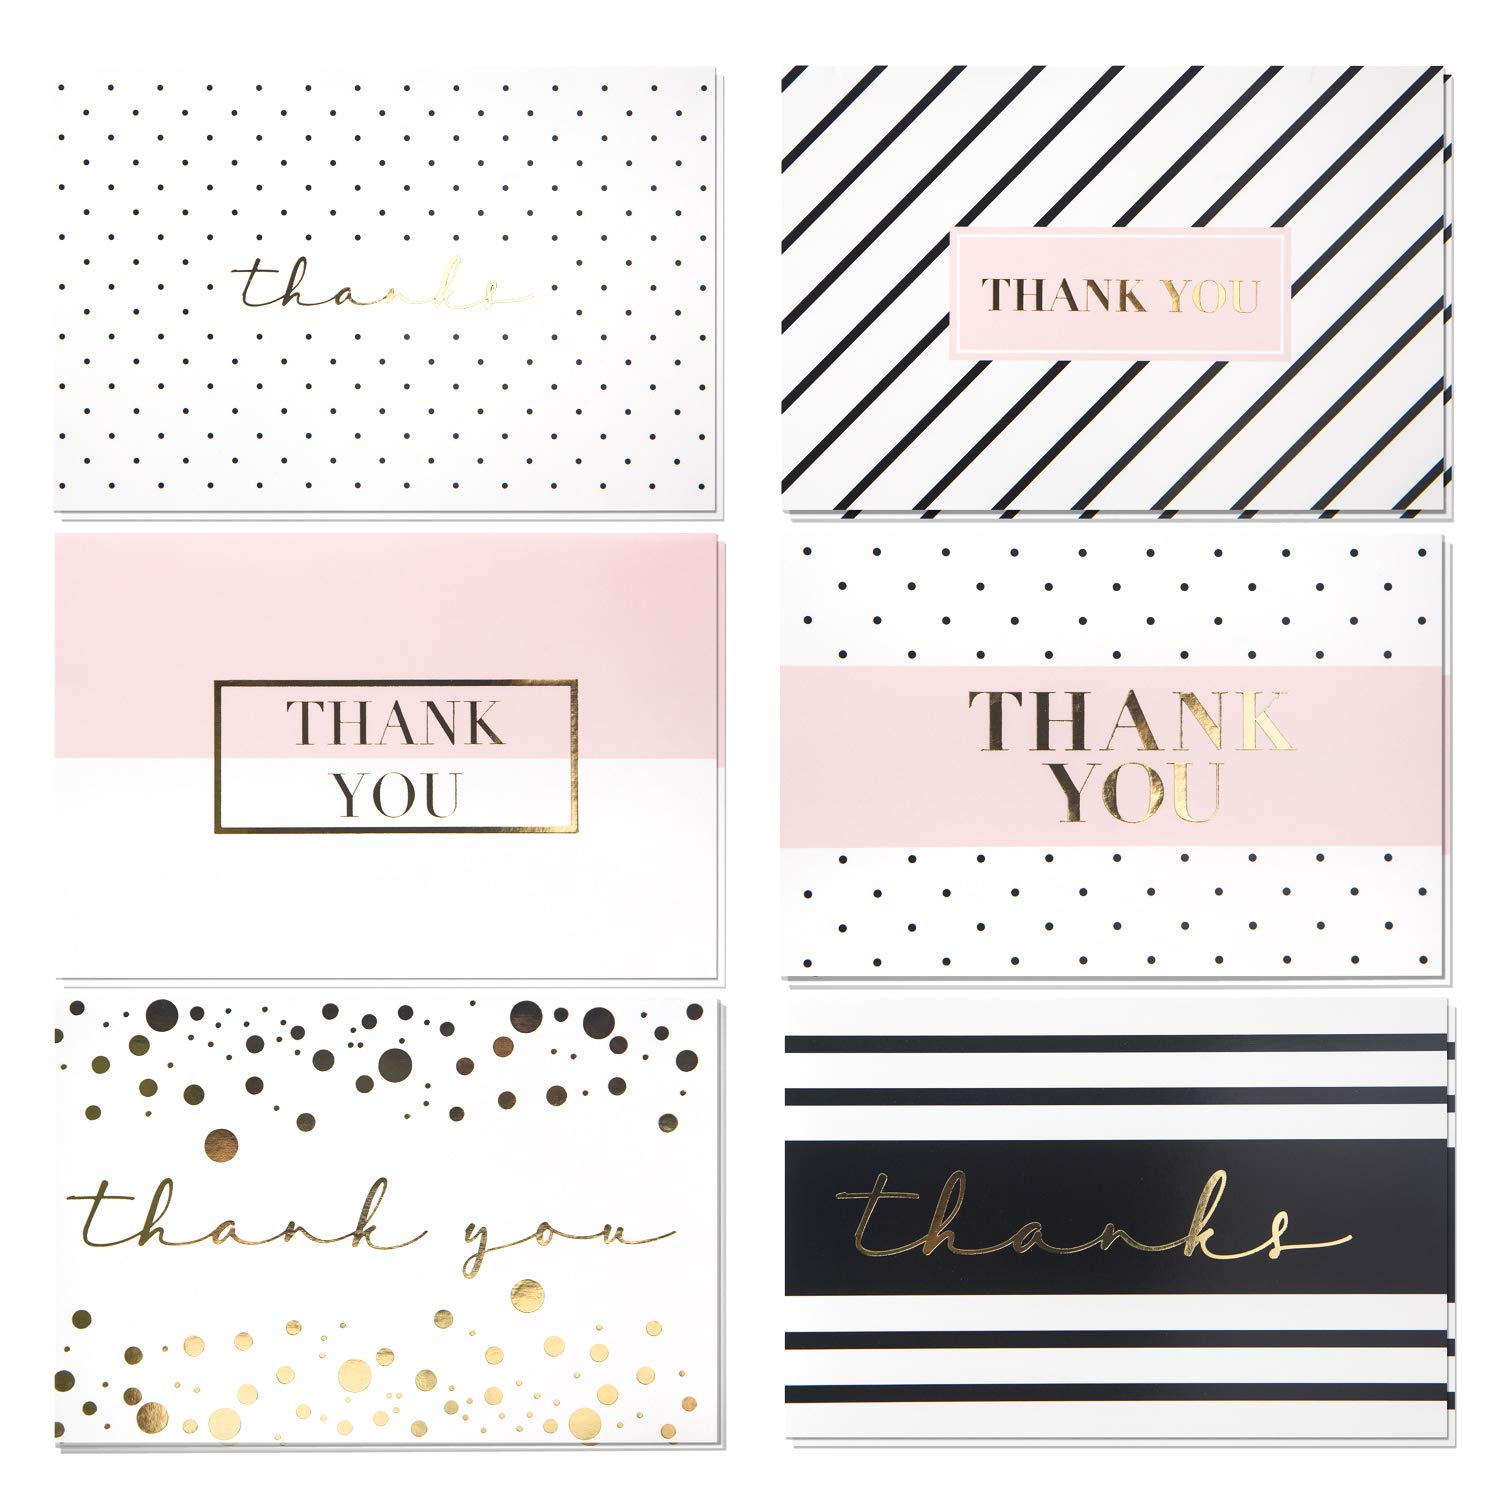 60 Pack Thank You Cards - Gold Foil Thank You Cards - Elegant Greeting Cards With ''Thank you'' Embossed In Gold Letters -Baby Shower, Bridal, Wedding Thank You Cards - Include 60 Envelope - 4'' x 6''